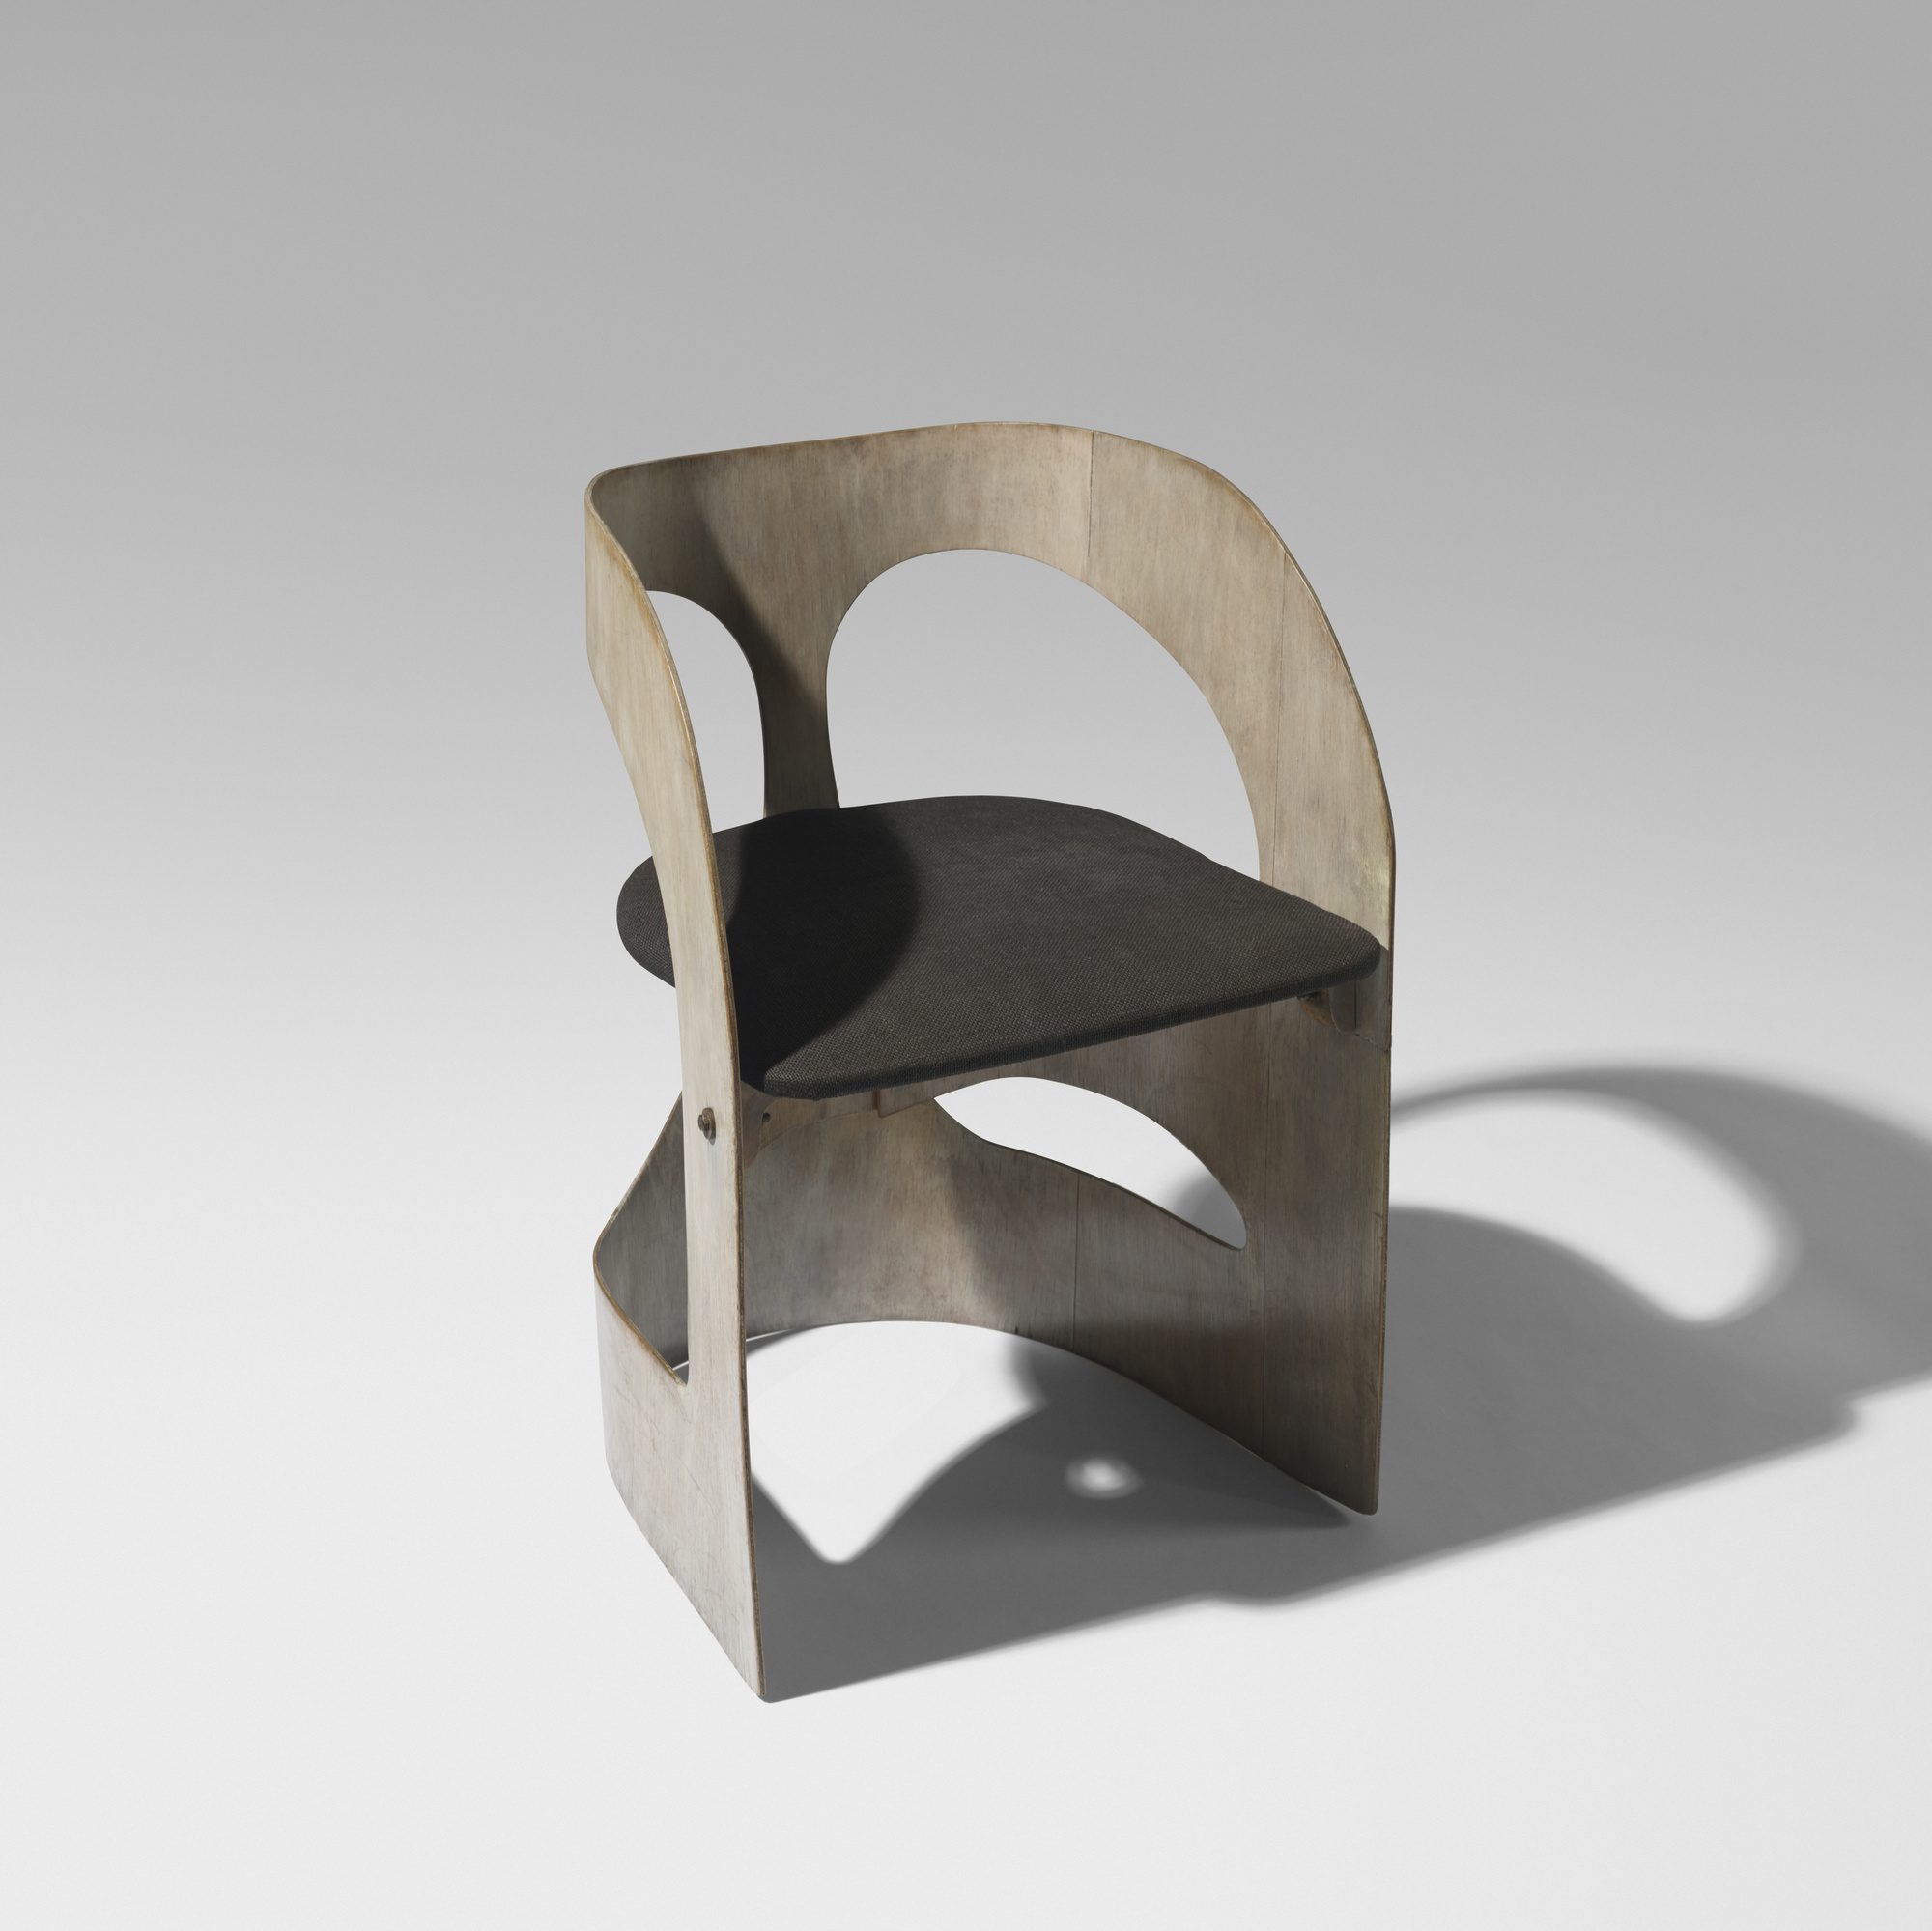 13: Gerald Summers / Rare Cut Ply Chair (CPC) (2 of 3)